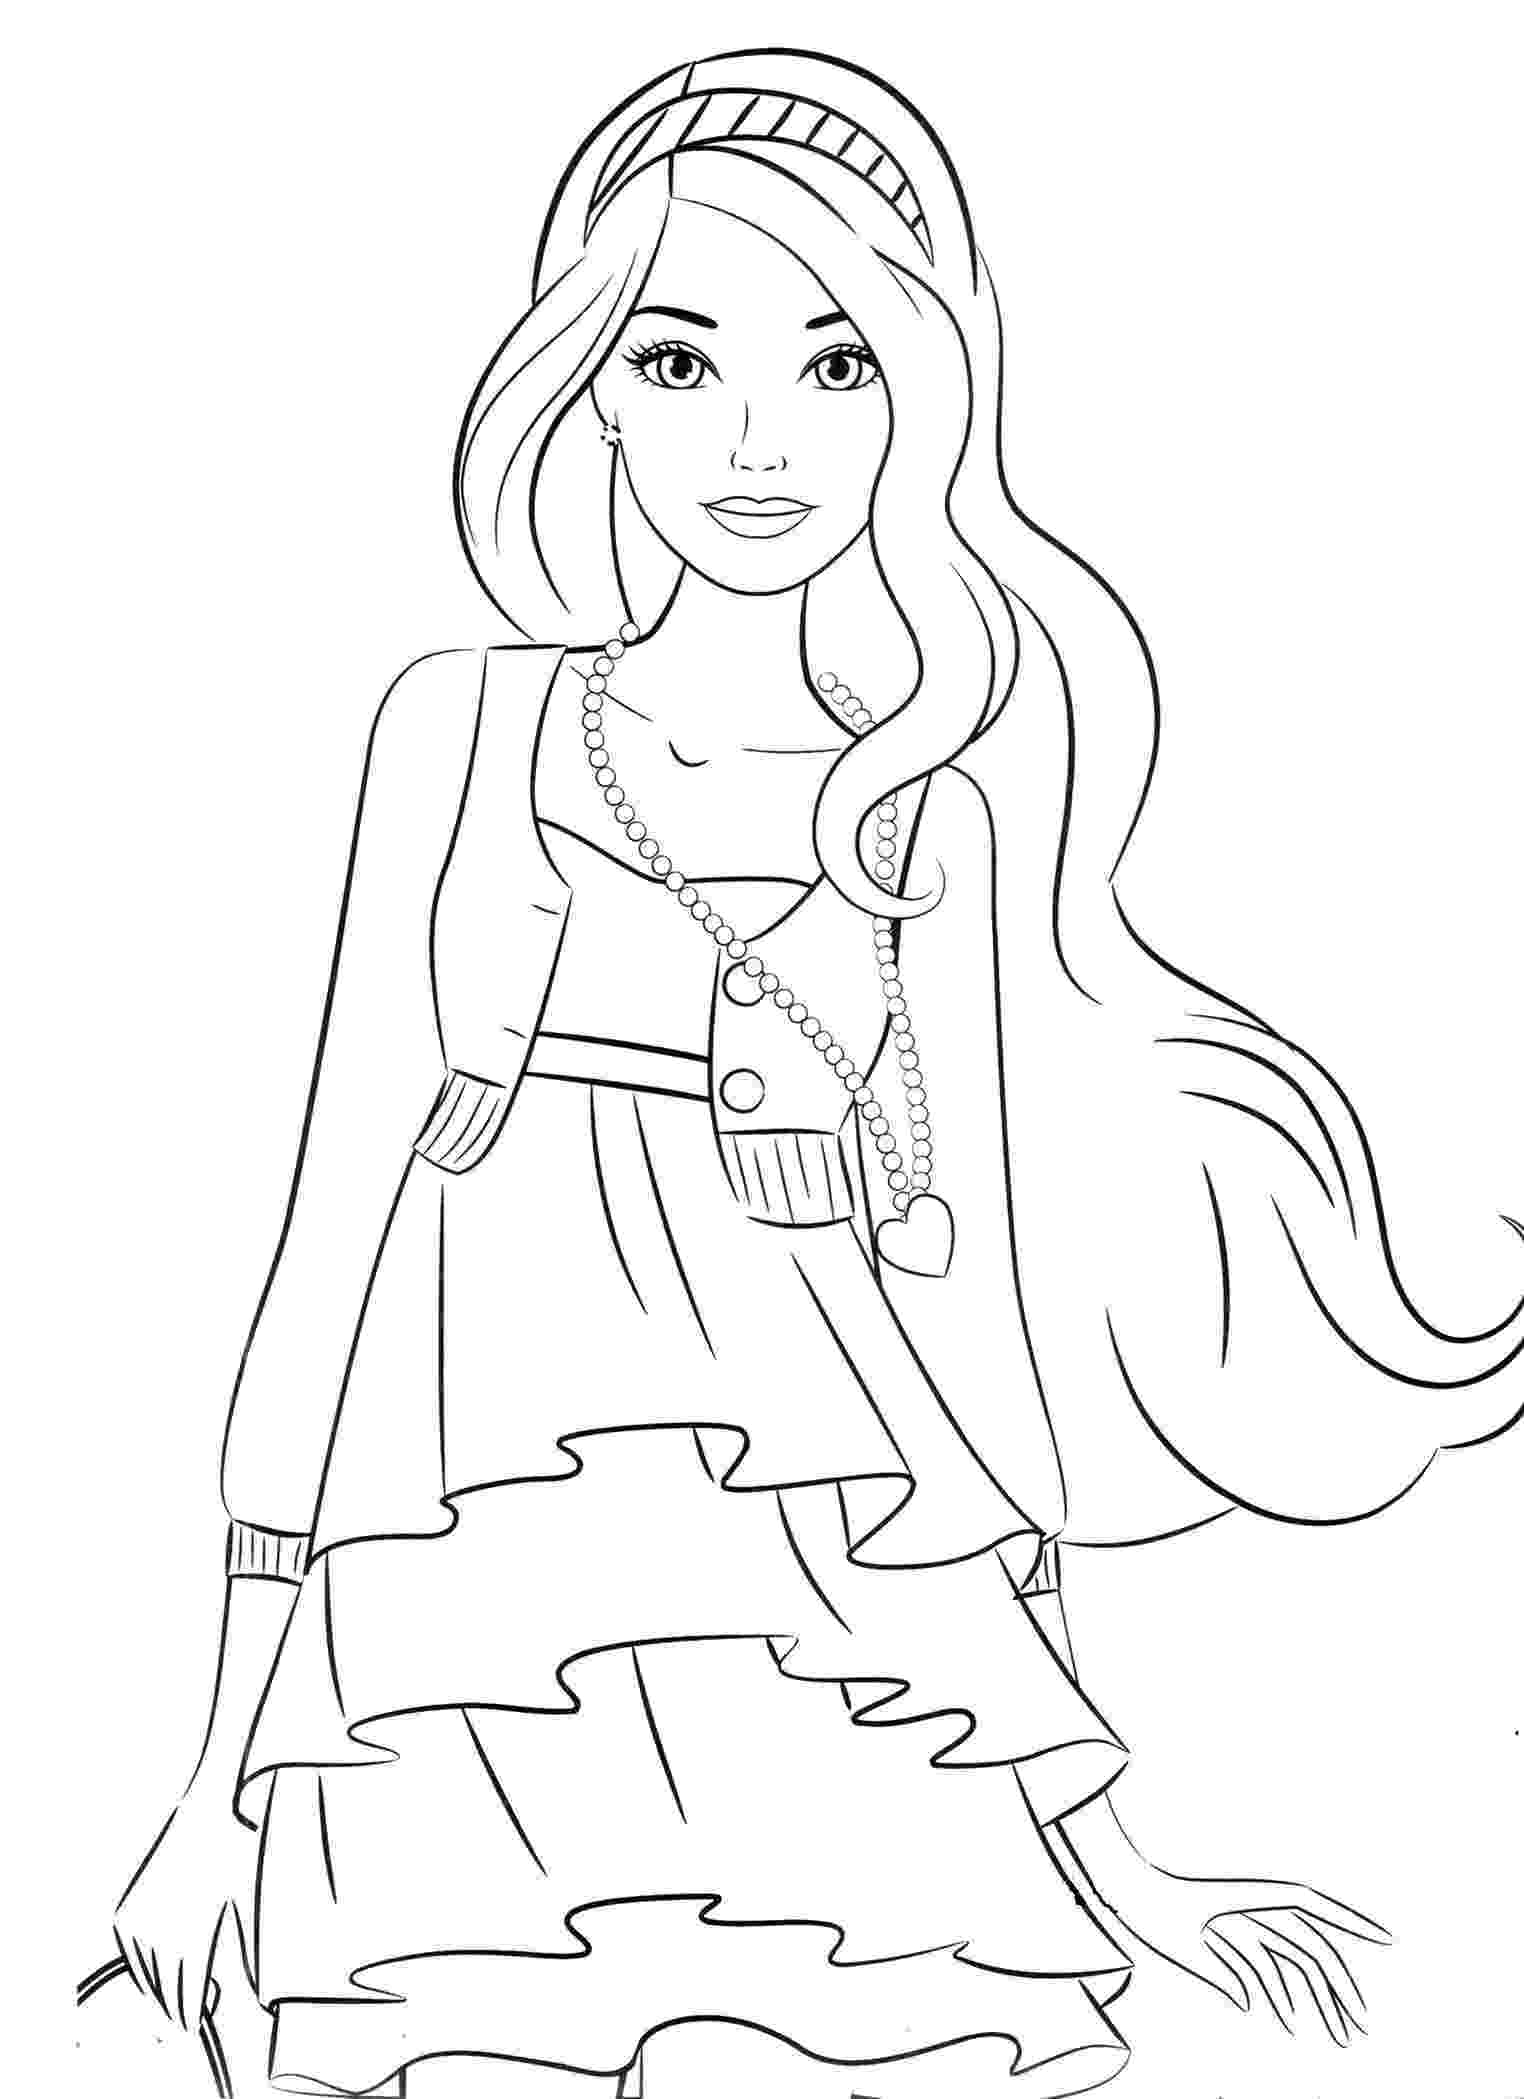 girl coloring sheets ladies coloring pages to download and print for free sheets coloring girl